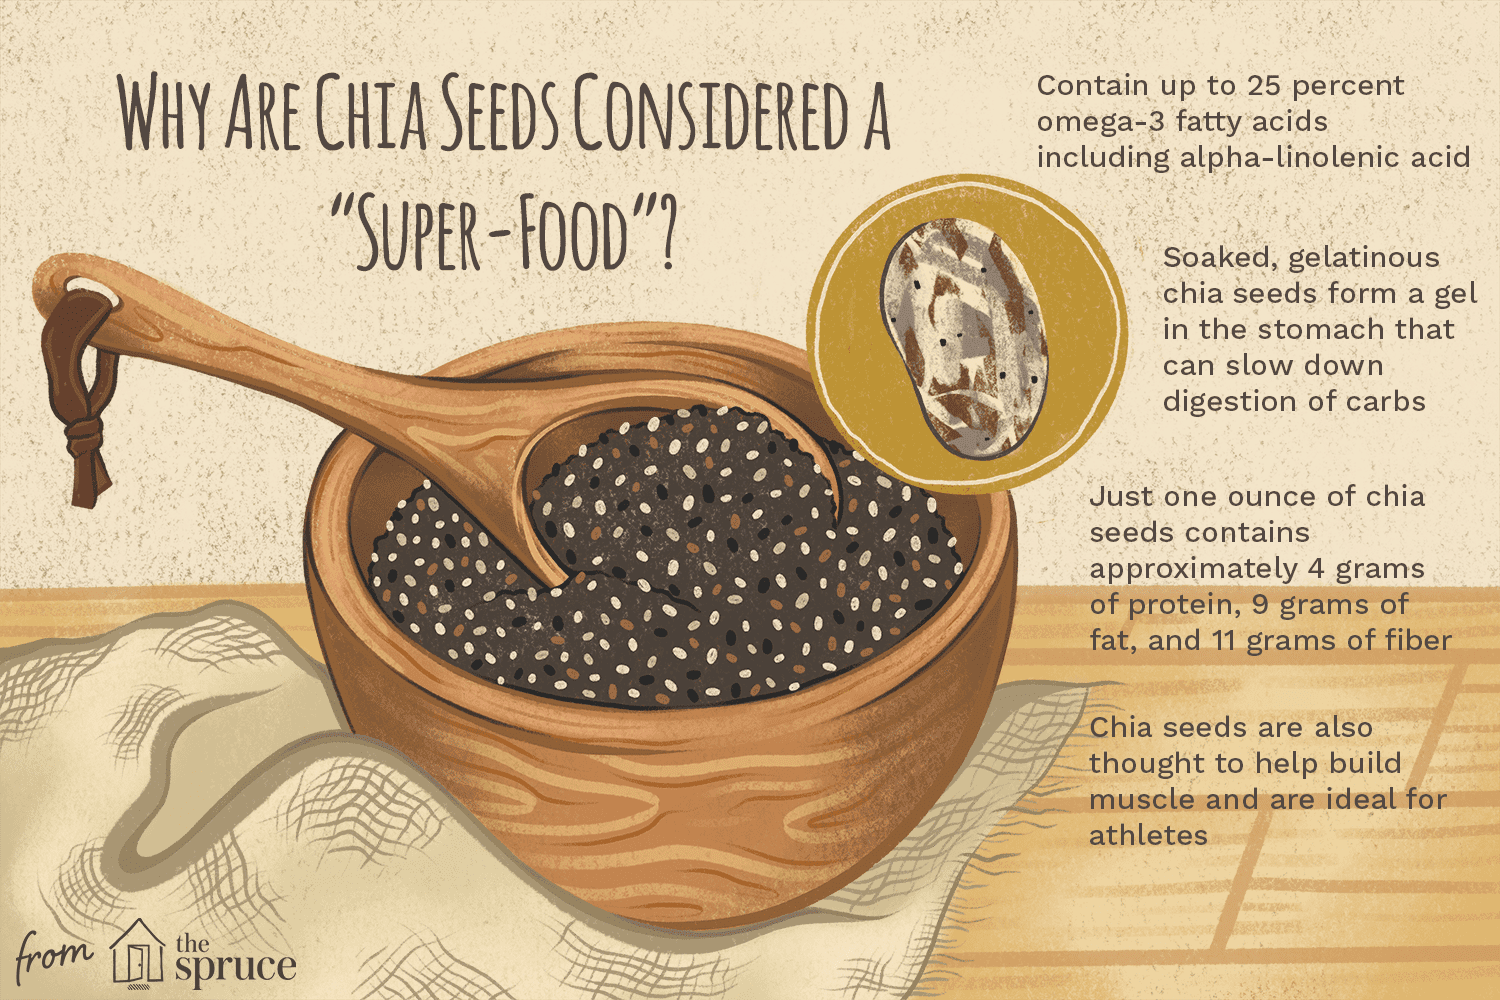 illustration with facts about chia seeds as a super food